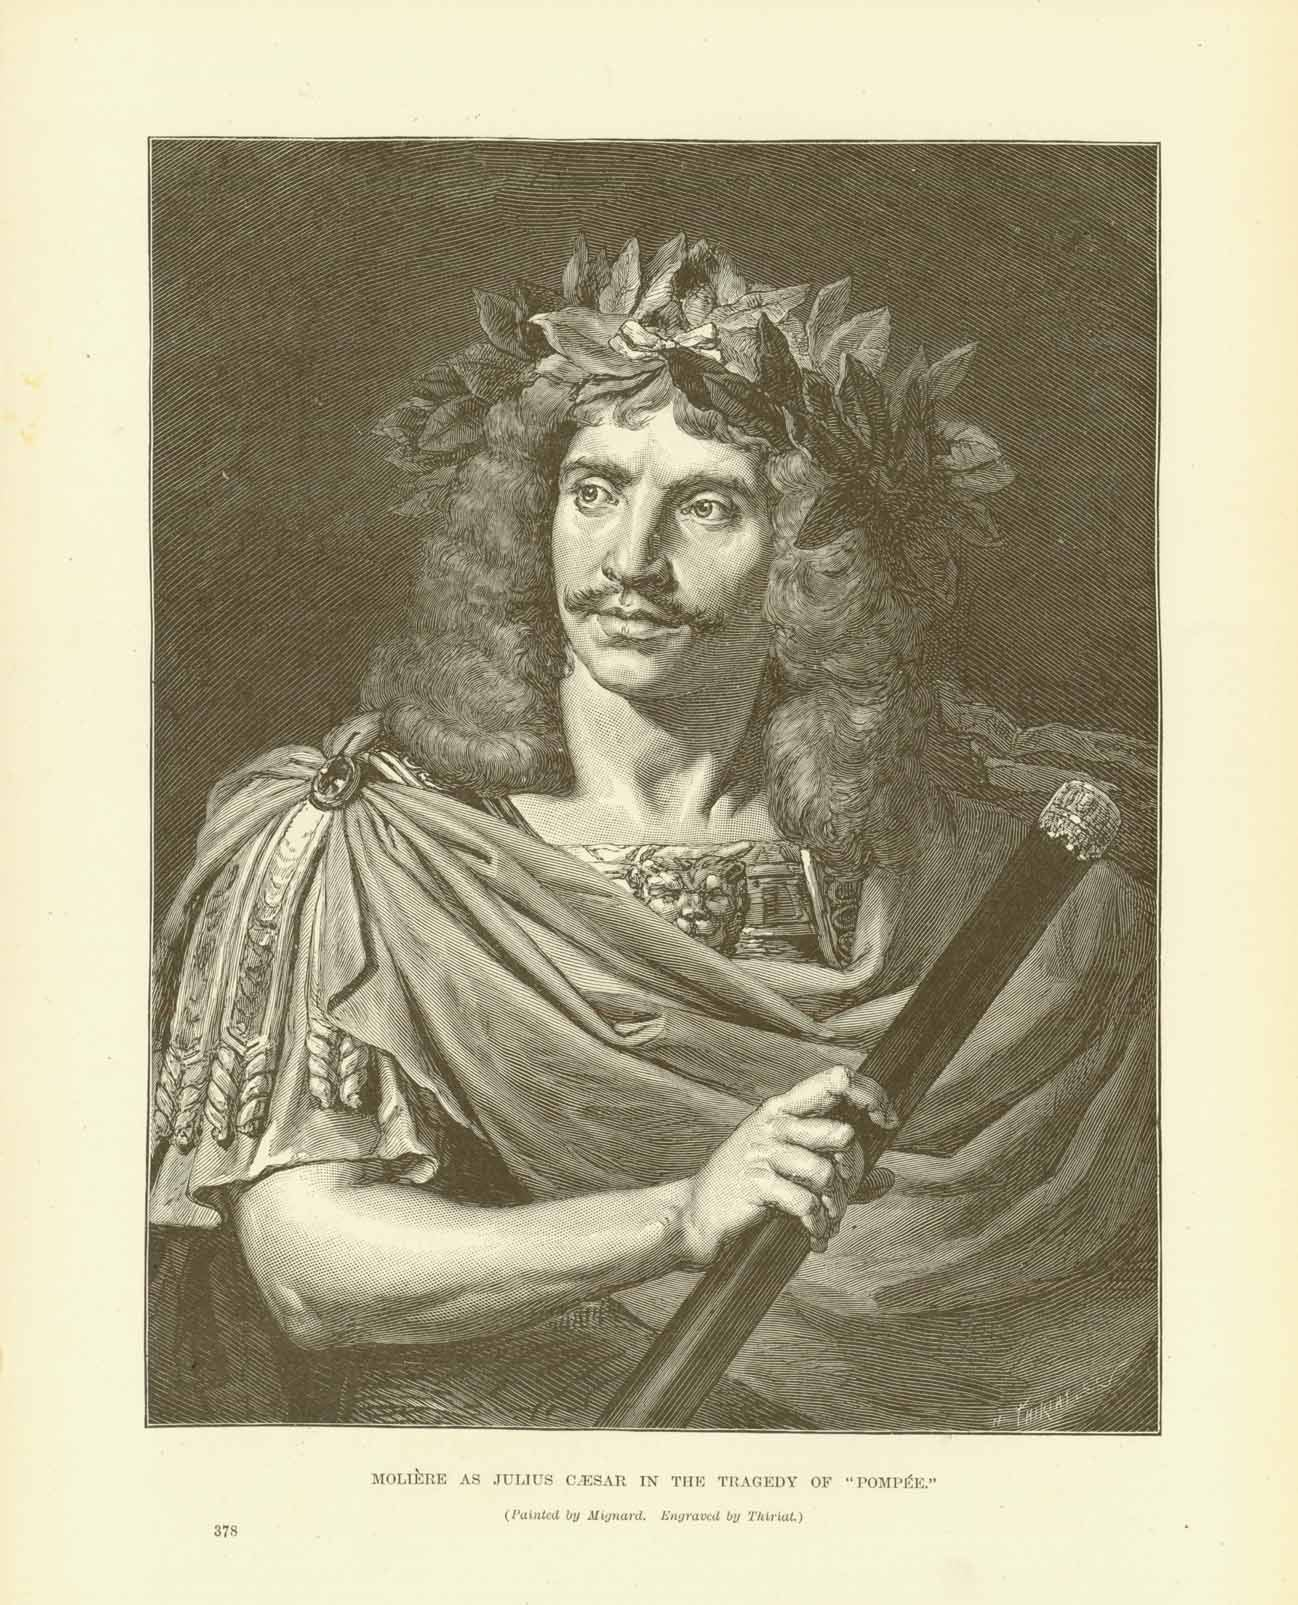 """Moliere as Julius Caeser in the Tragedy of ""Pompee""  Wood engraving made after a painting by Mignard and engraved by Thiriat."